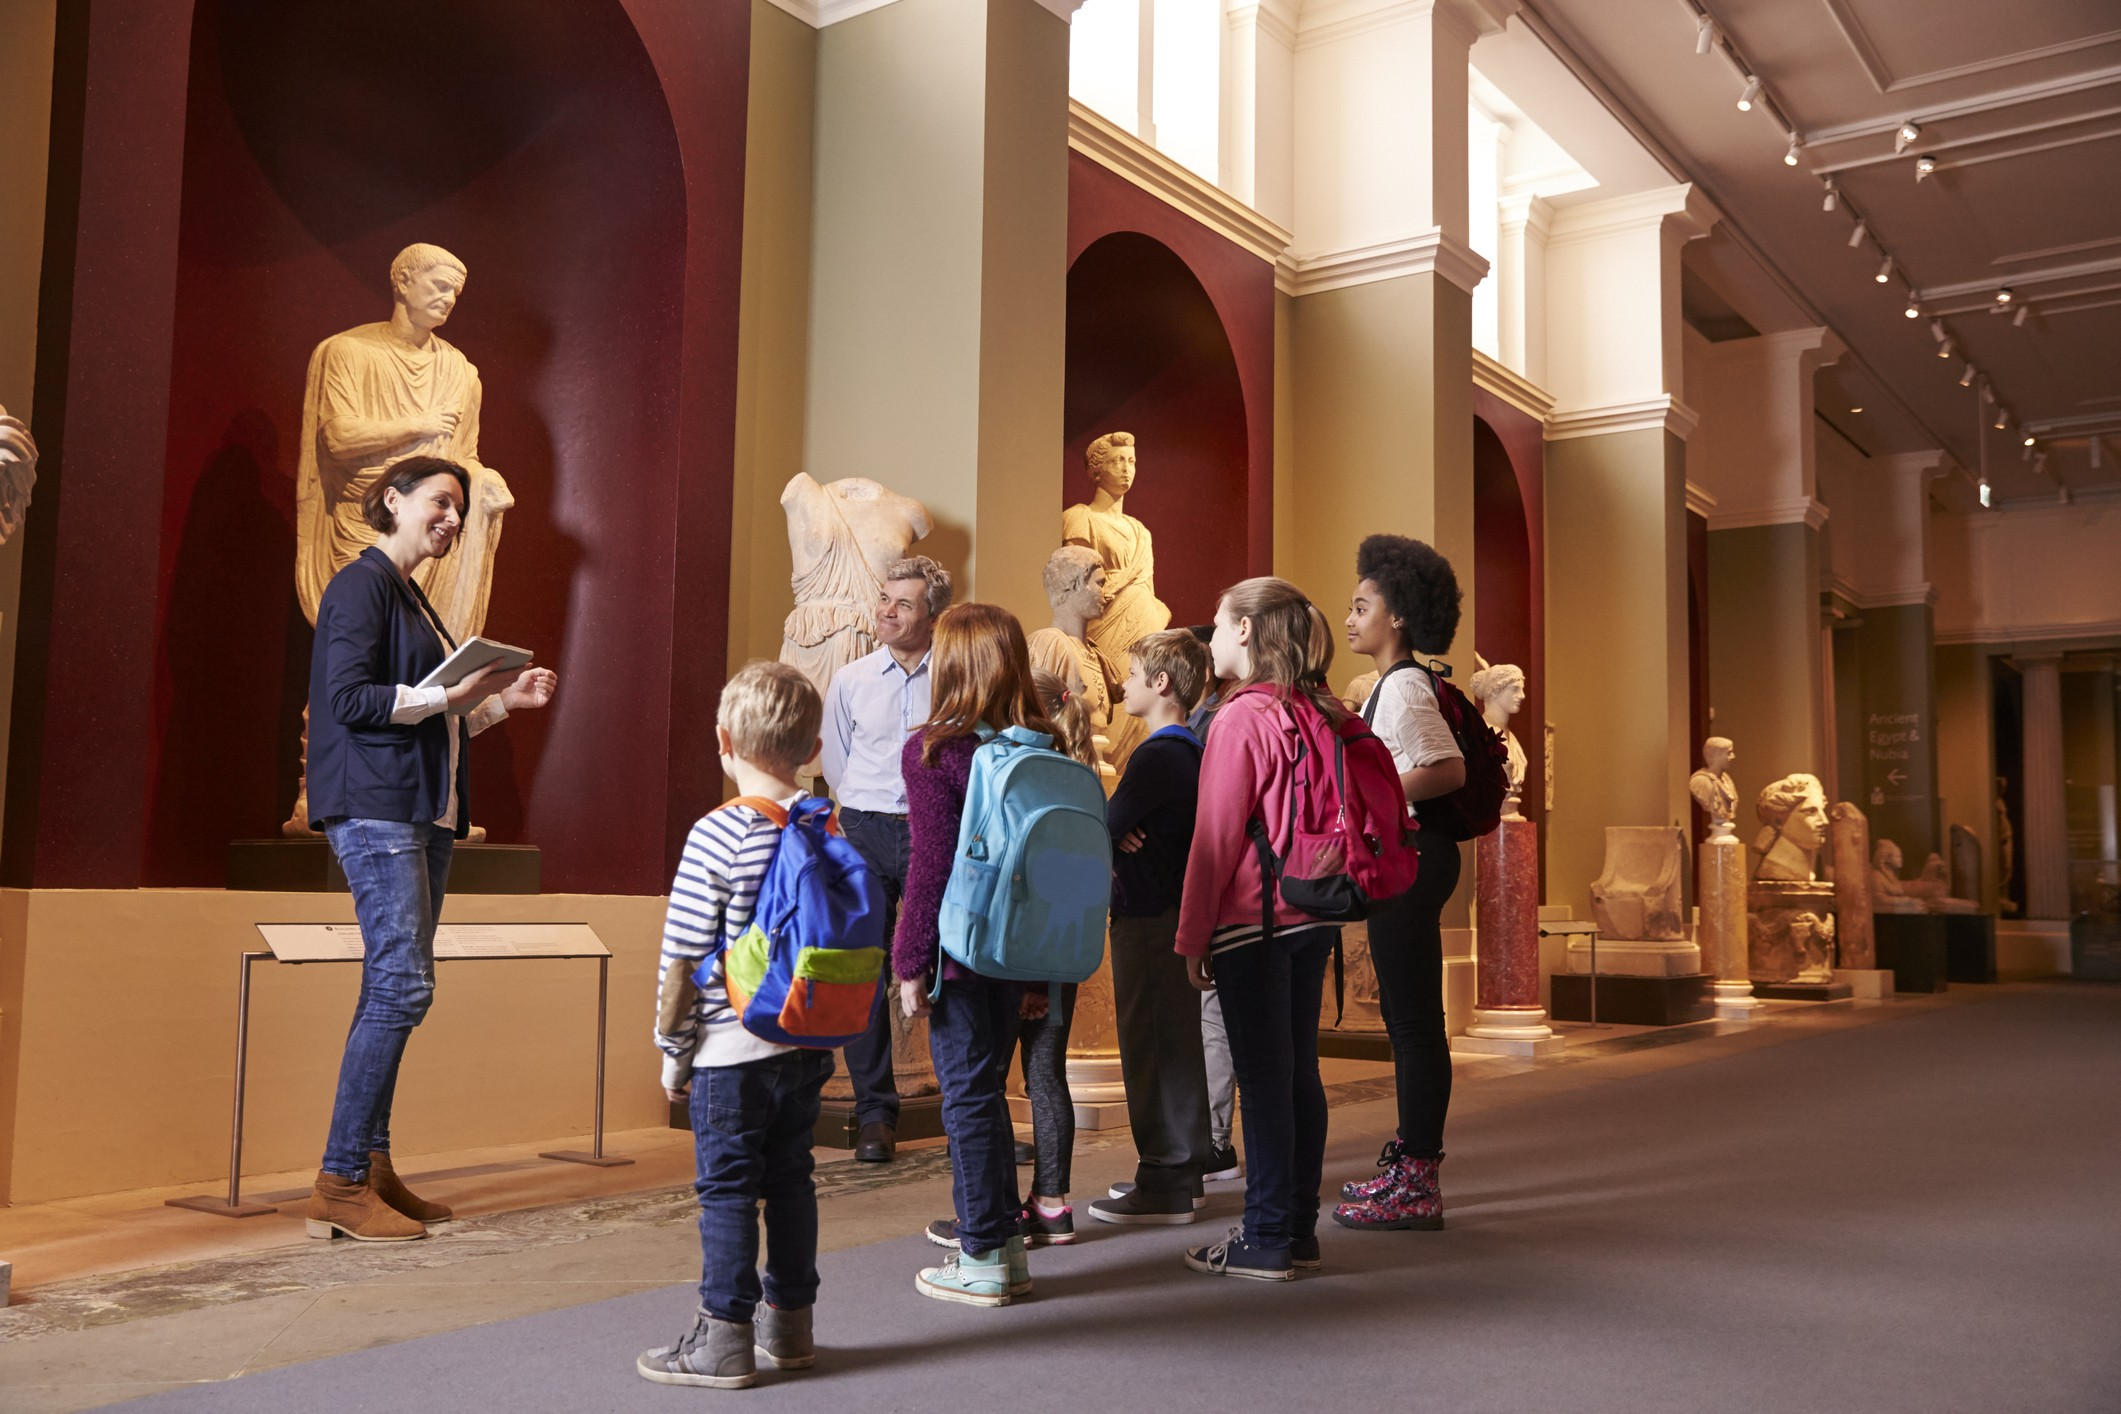 Children and tour guide discuss museum